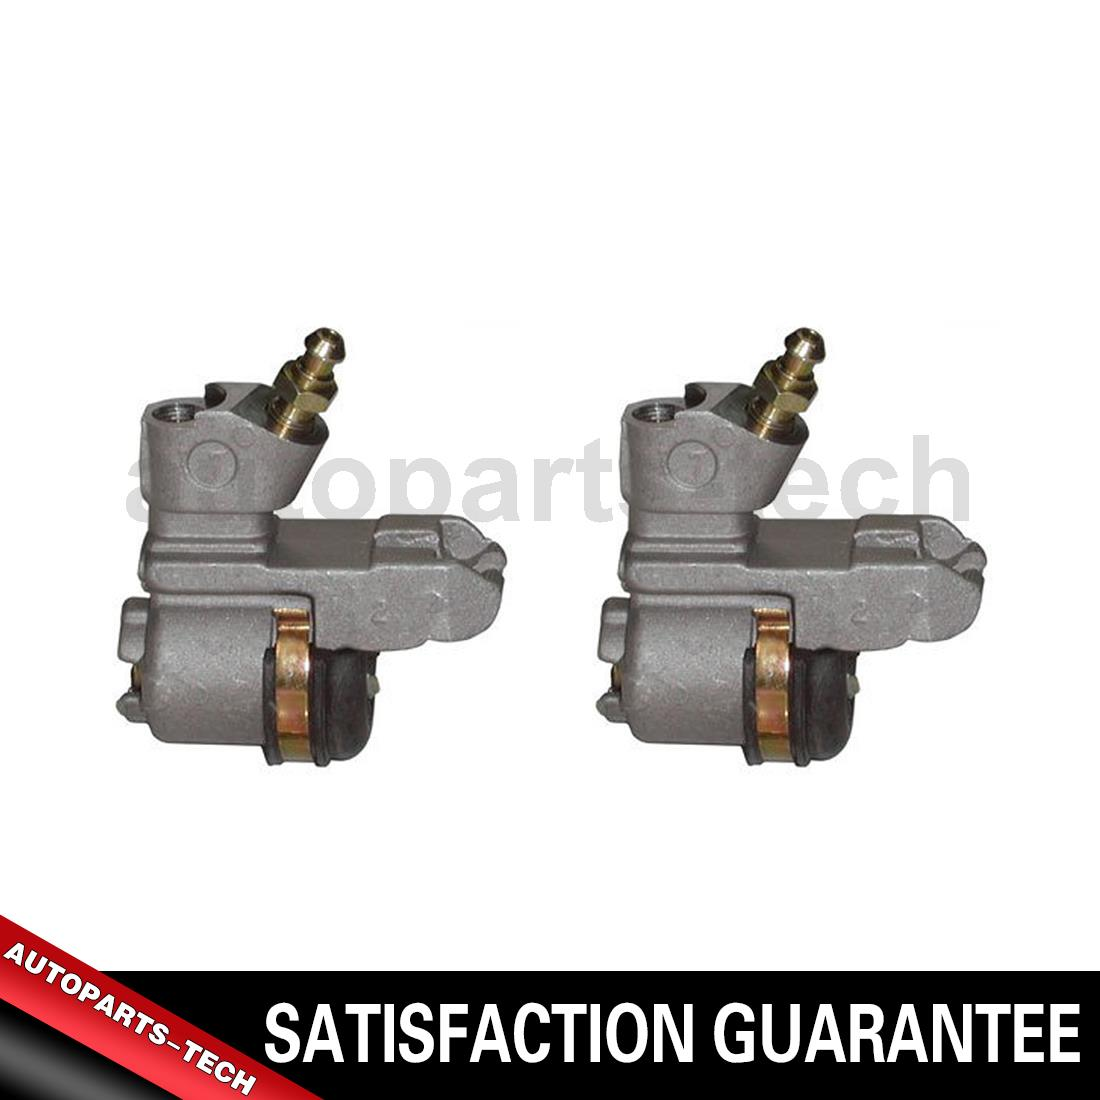 Pair of New Rear Wheel Brake Cylinders for  Austin Healey 3000